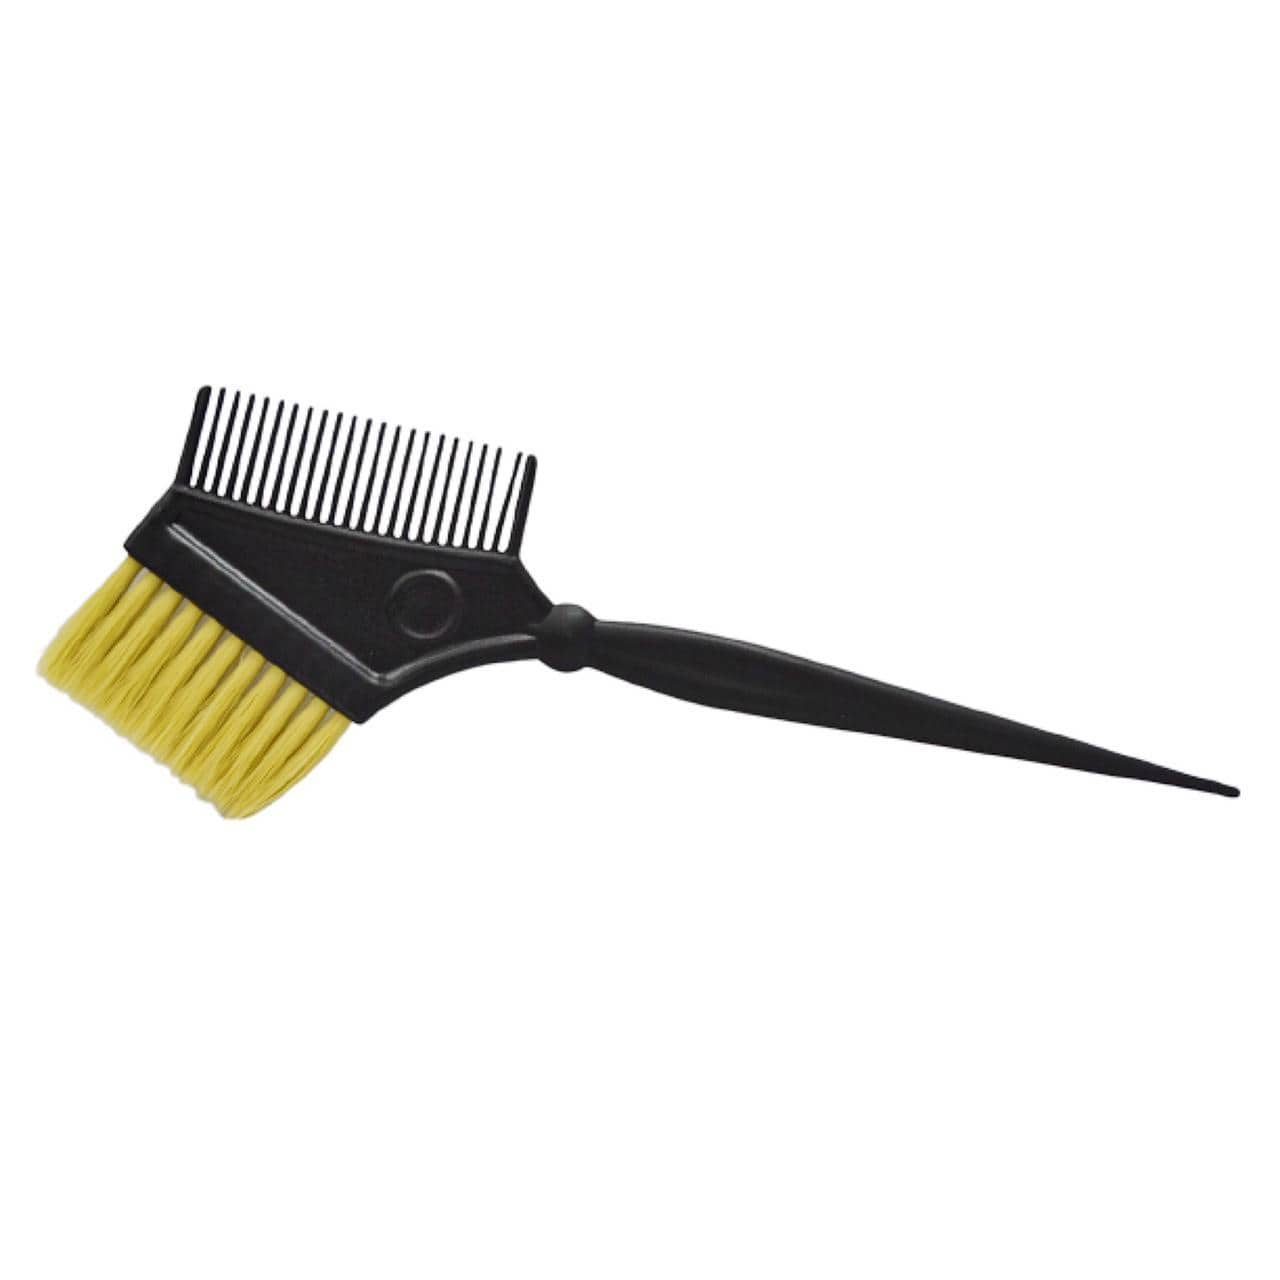 Globalstar Tint Brush With Comb - HS69939